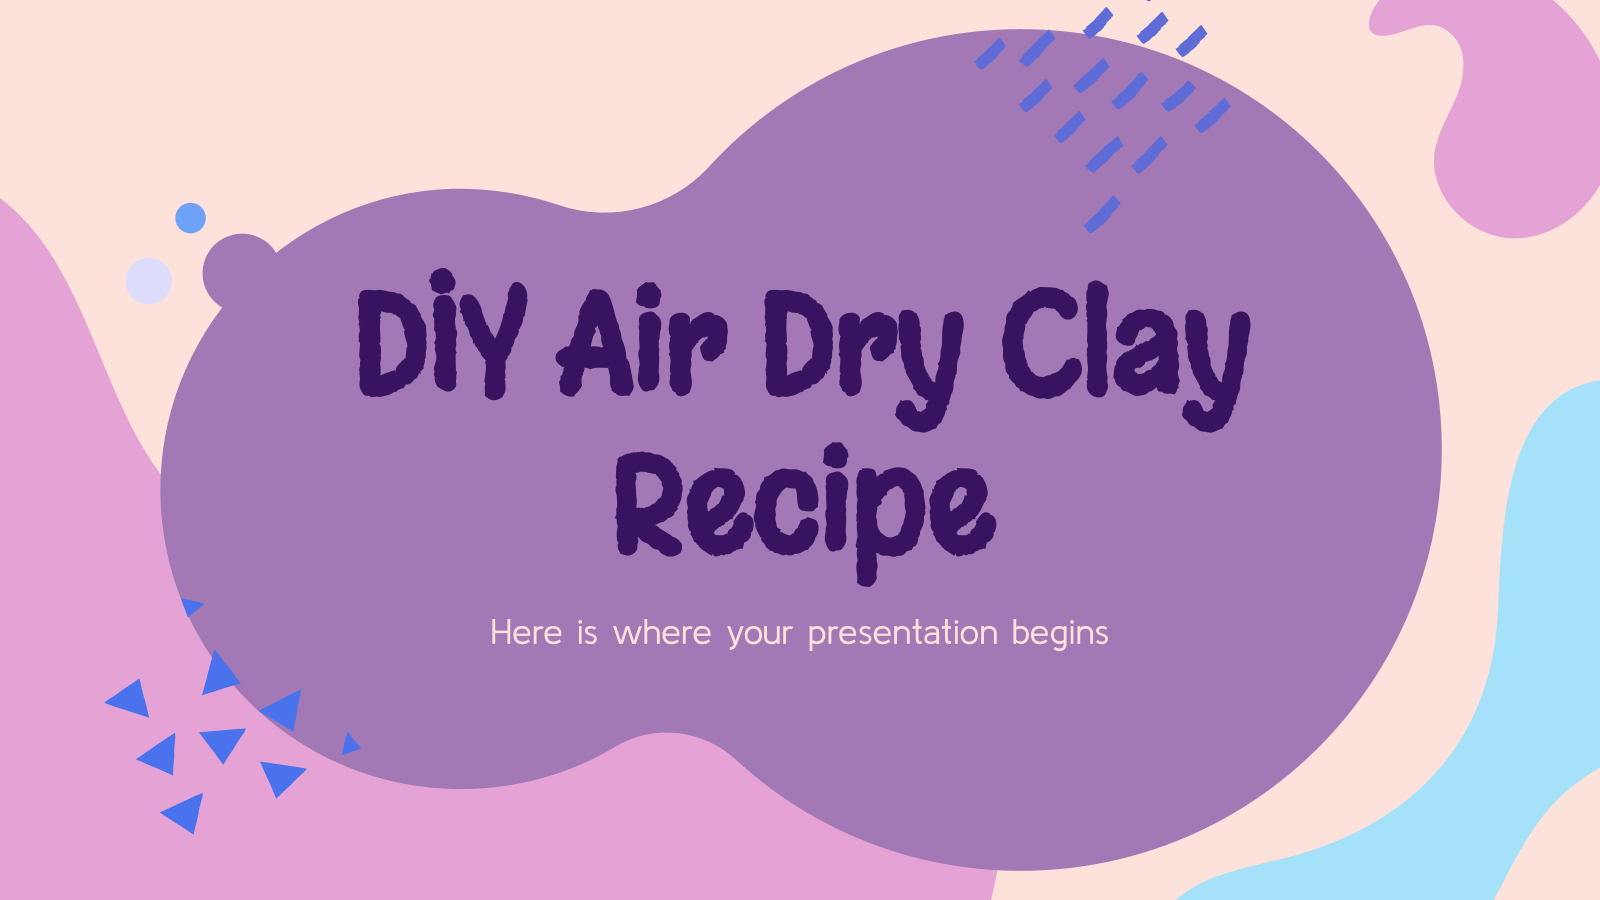 DIY Air Dry Clay Recipe presentation template